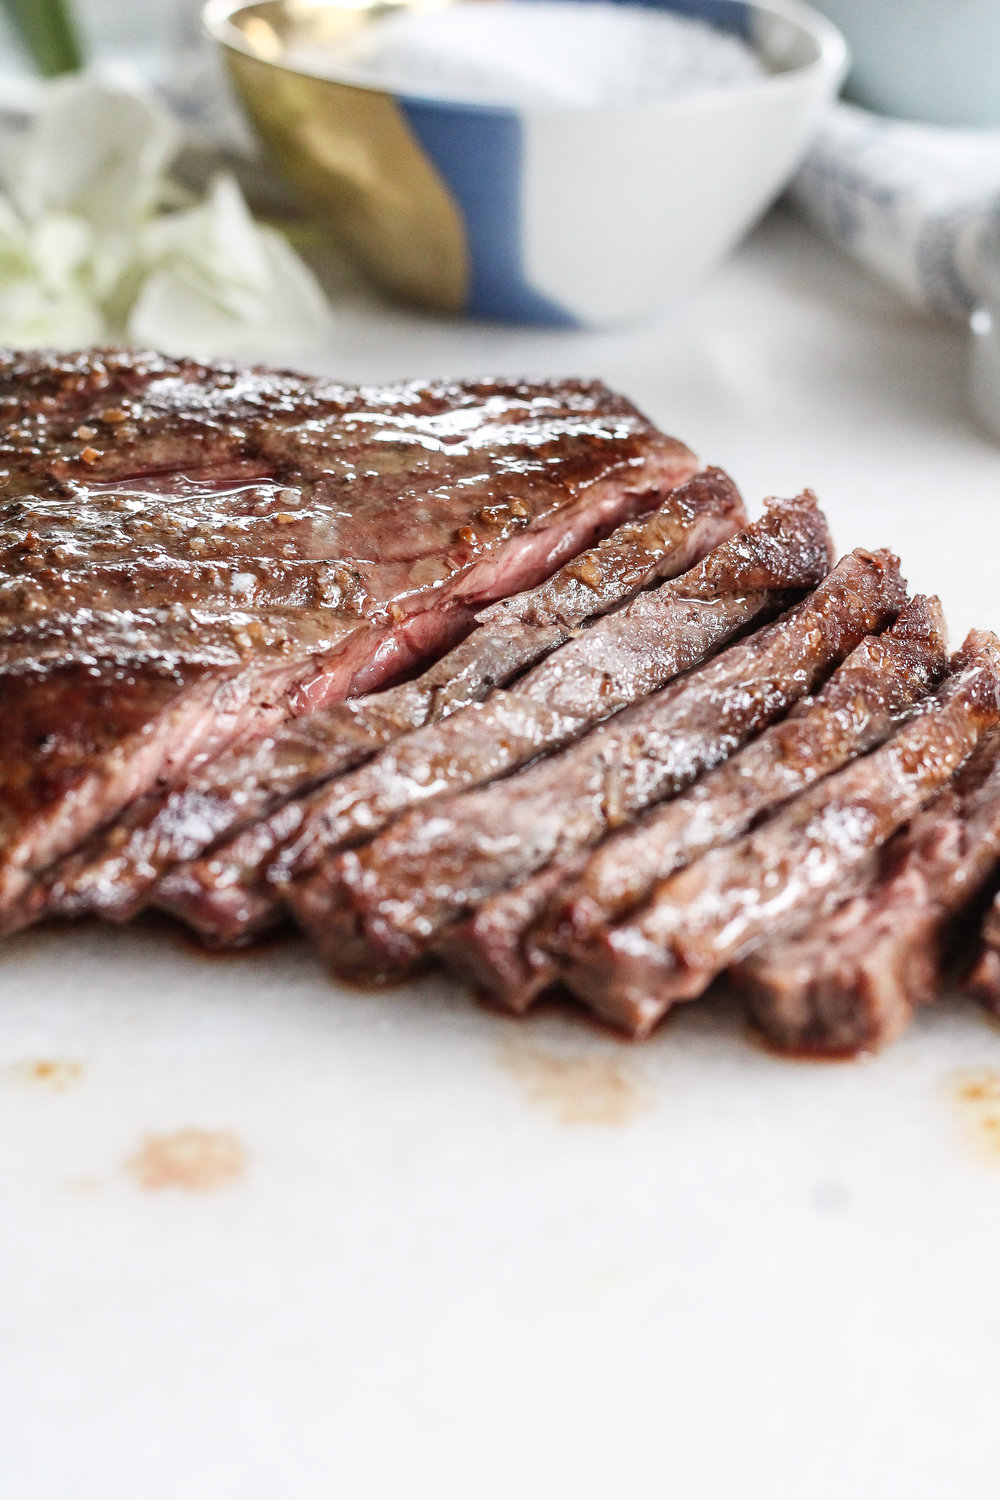 This super simple method is the fool-proof road to turning simple and affordable skirt steak into a restaurant-style dinner.  Find the recipe at www.pedanticfoodie.com.